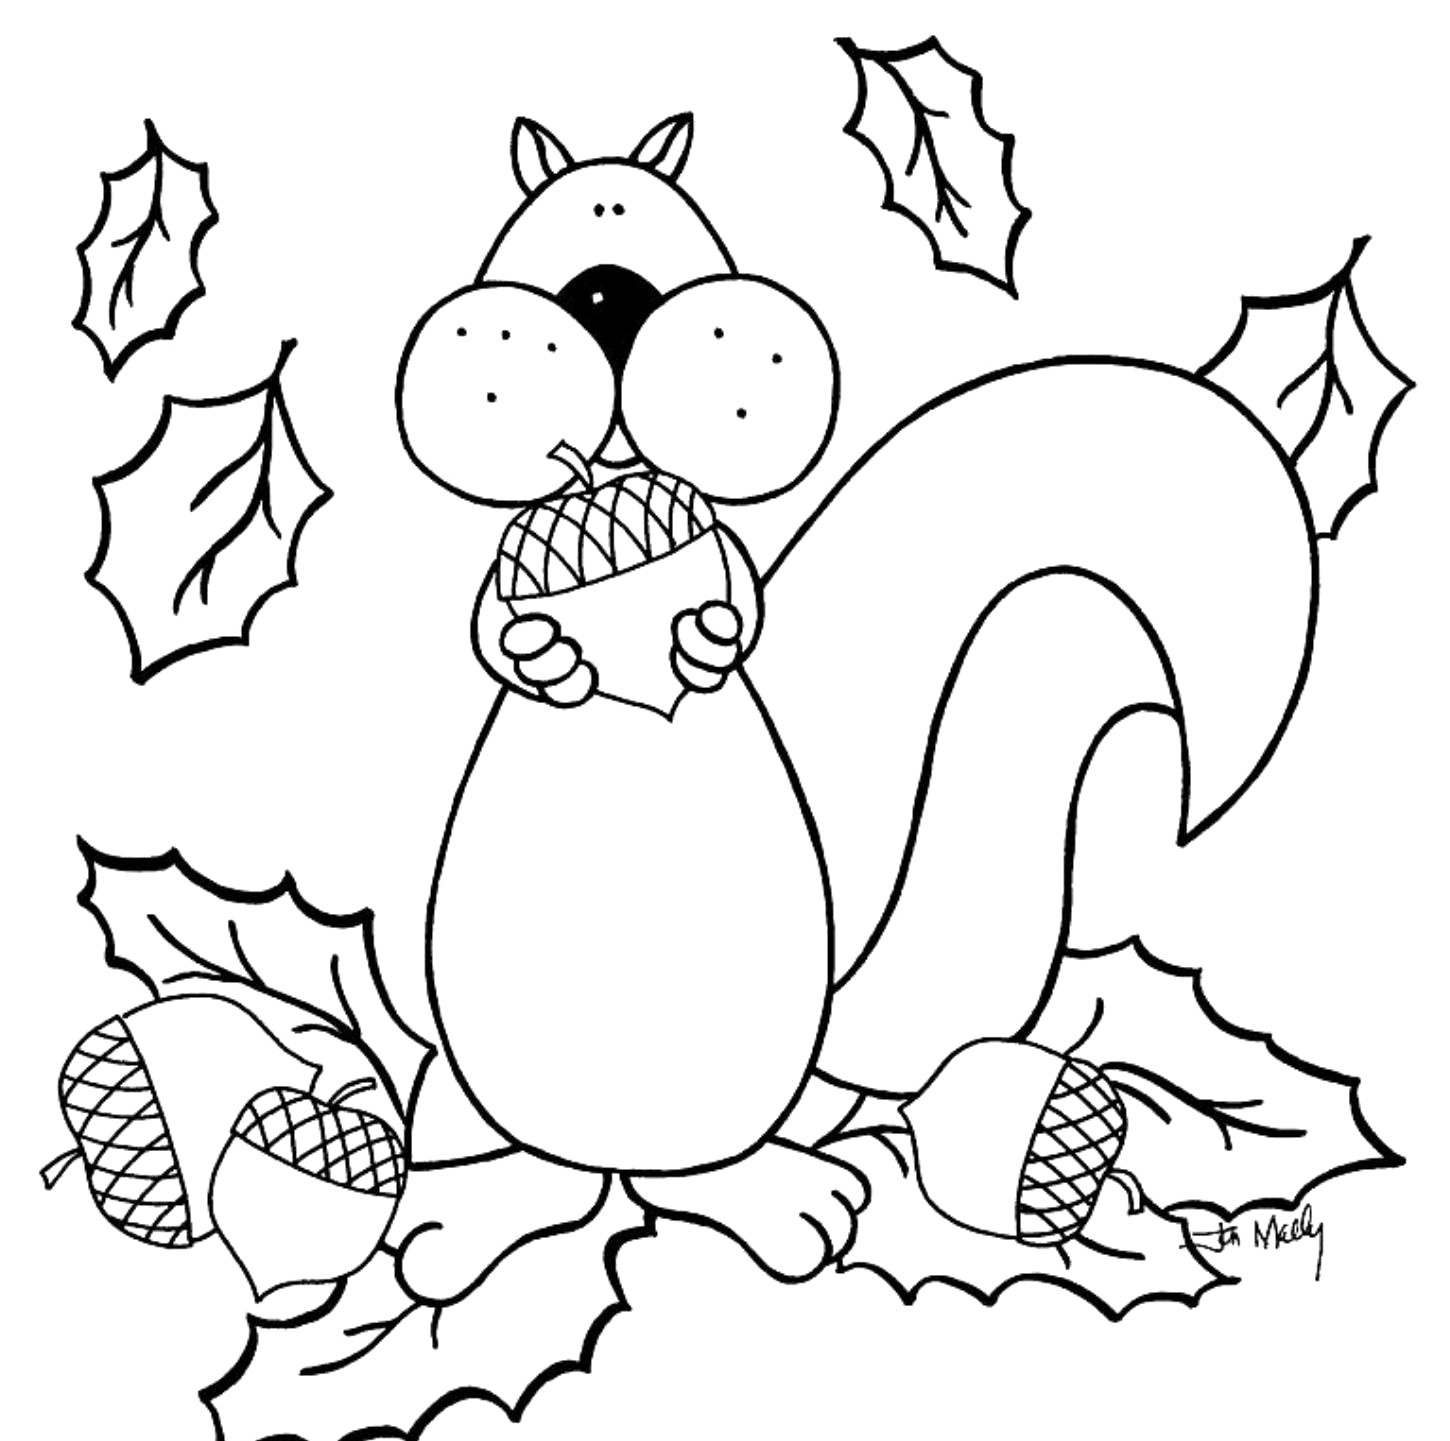 Free Printable Fall Coloring Pages For Kids - Best Coloring Pages - Free Printable Leaf Coloring Pages